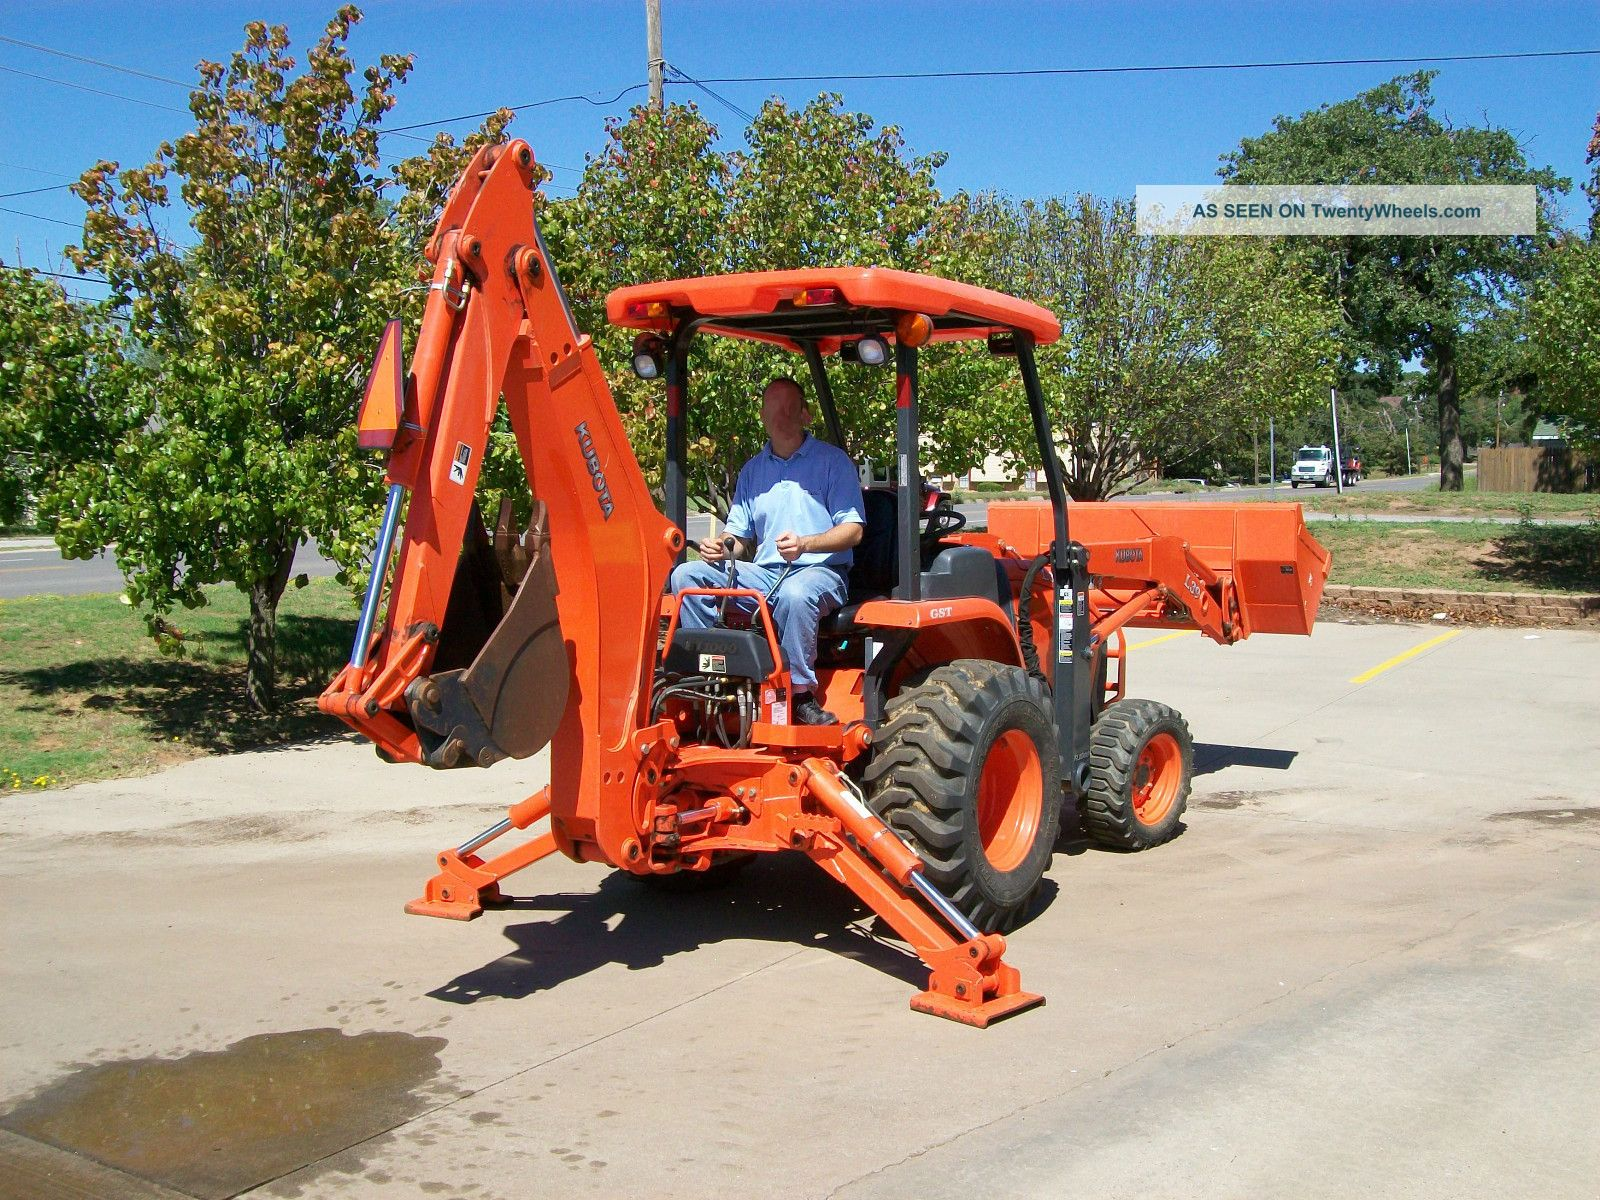 2008 Kubota L39 4x4 Compact Tractor Loader, Backhoe, With Forks And